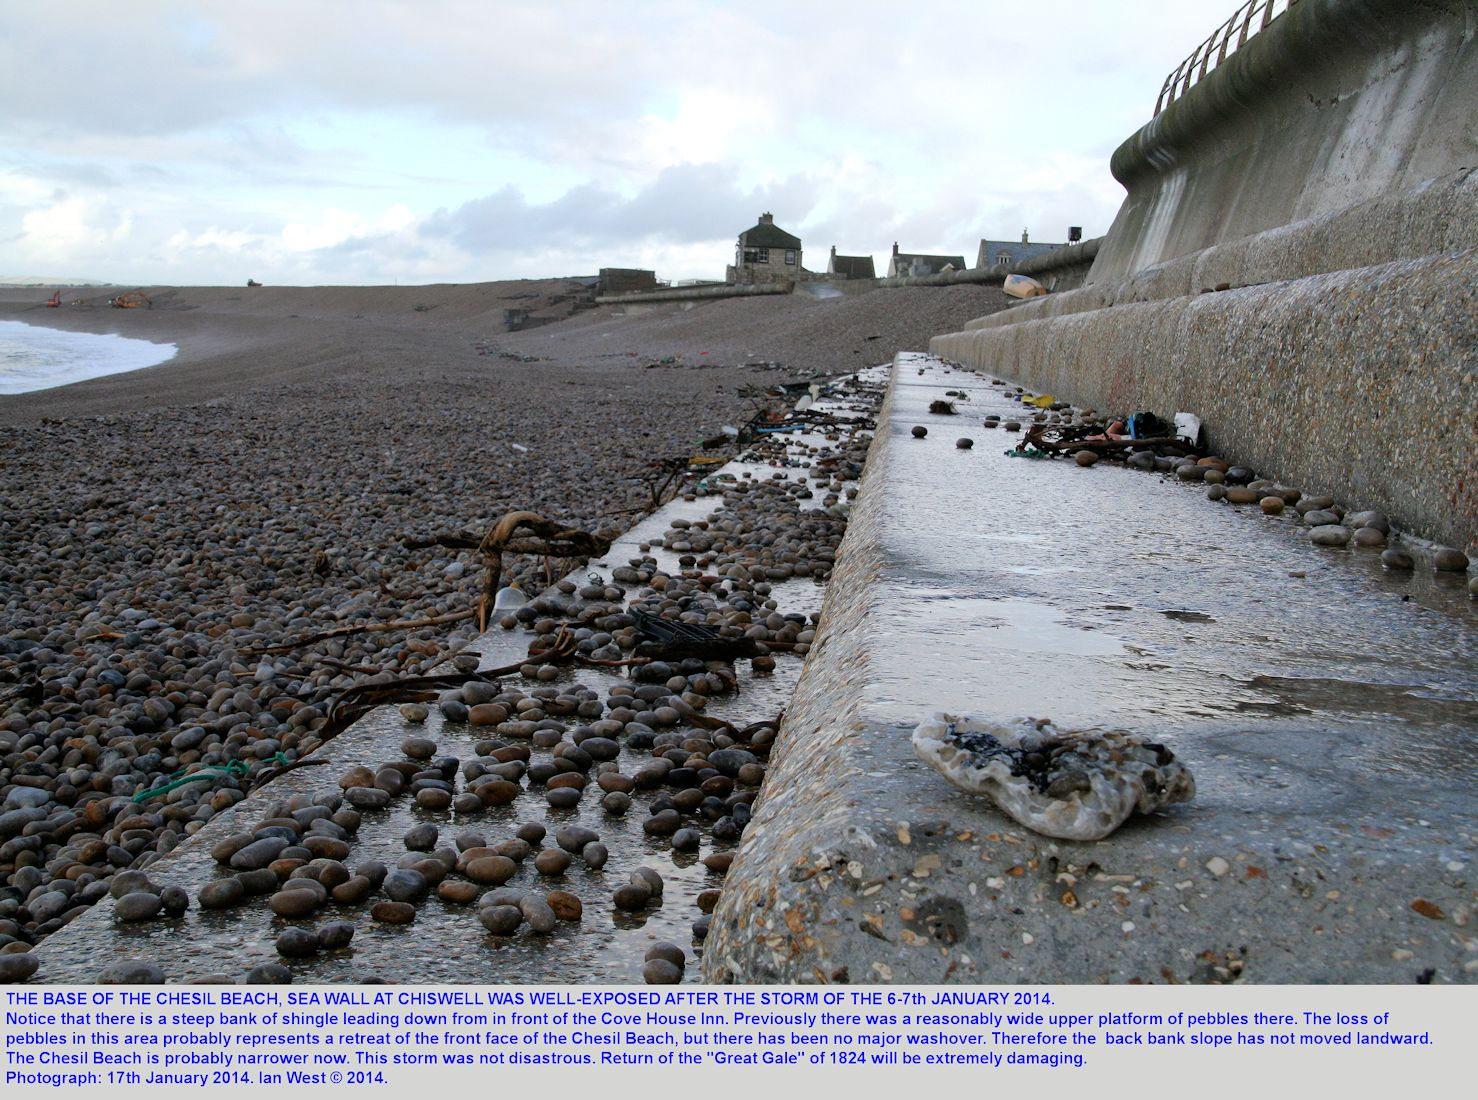 Under the seawall at Chiswell, Chesil Beach, Dorset, in January 2014 after the storm of 6th to 7th January 2014